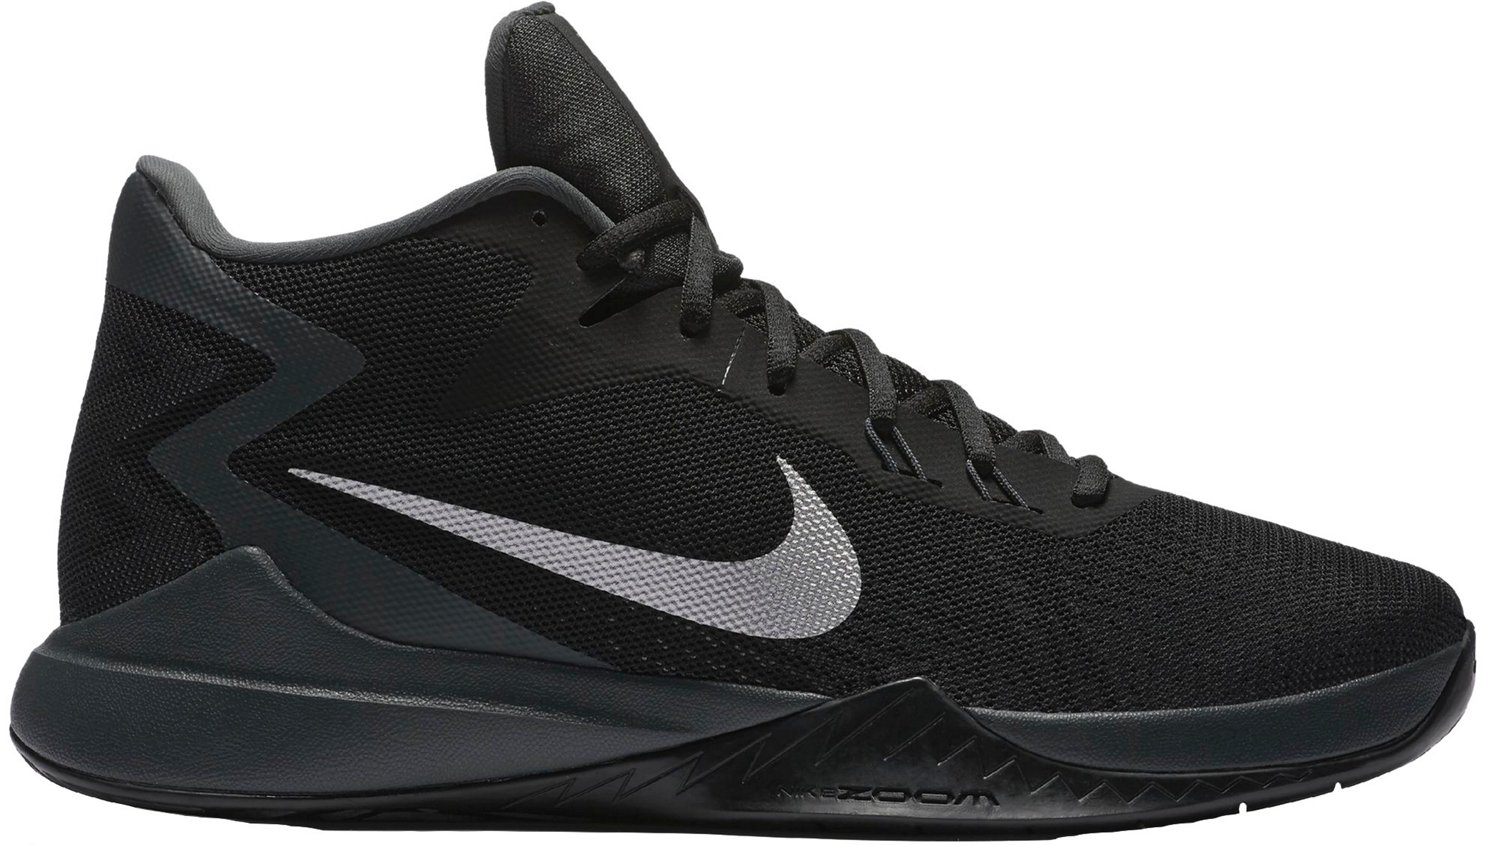 nike sneakers cross training good basketball shoes  7c30dafc5a